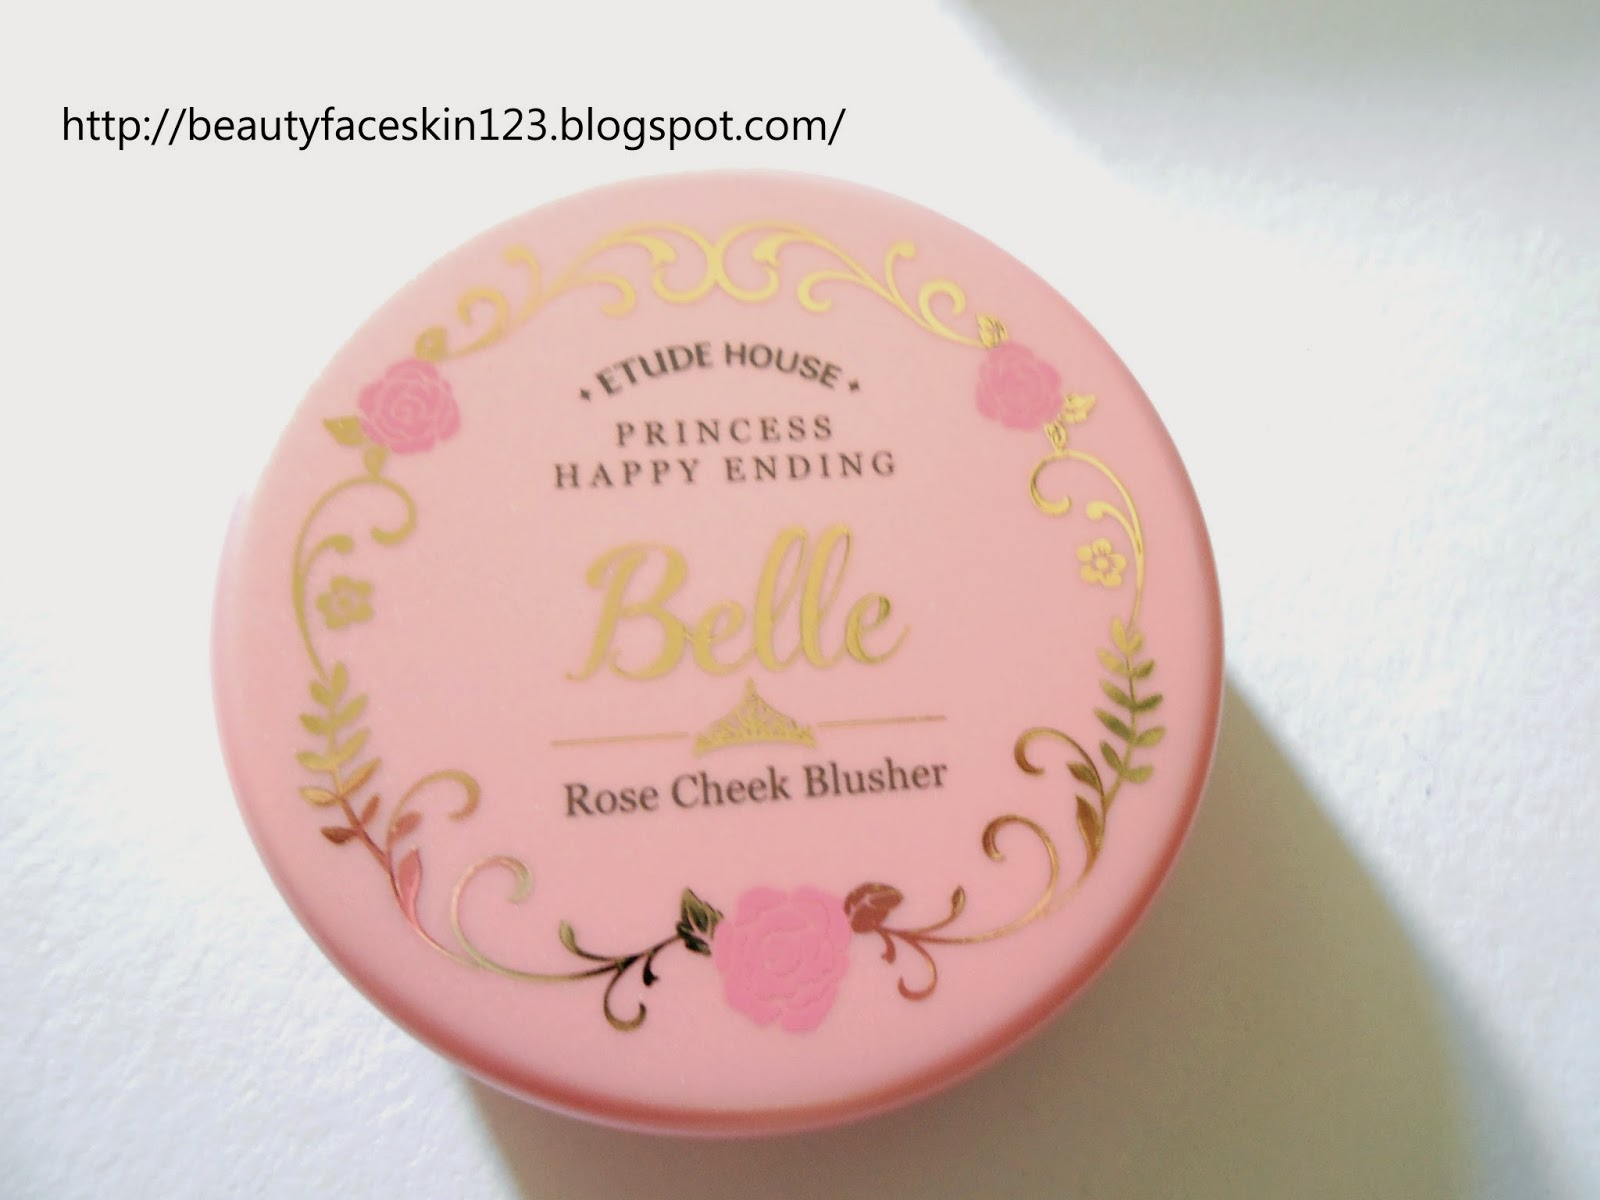 ETUDE HOUSE PRINCESS HAPPY ENDING ROSE CHEEK BLUSHER #1 PINK SHINE ROSE